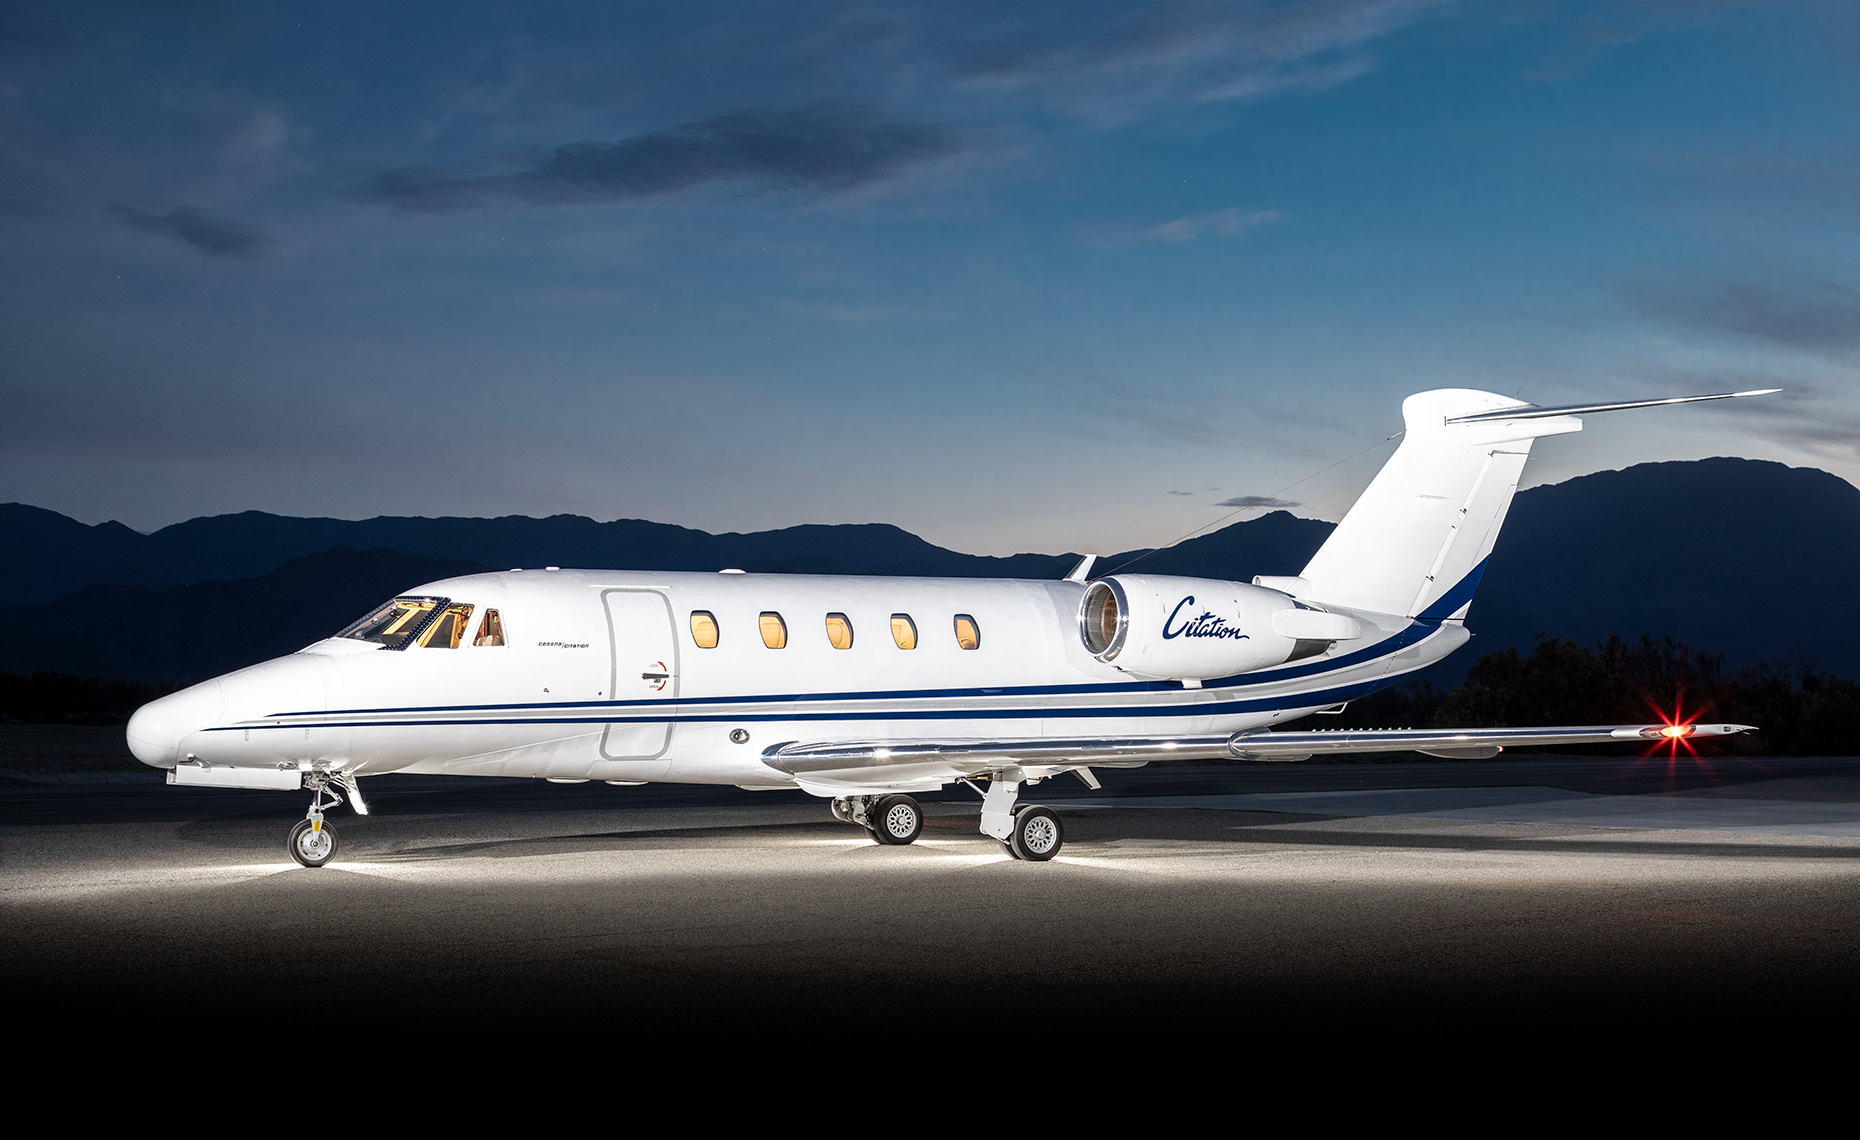 Cessna Citation III private jet.